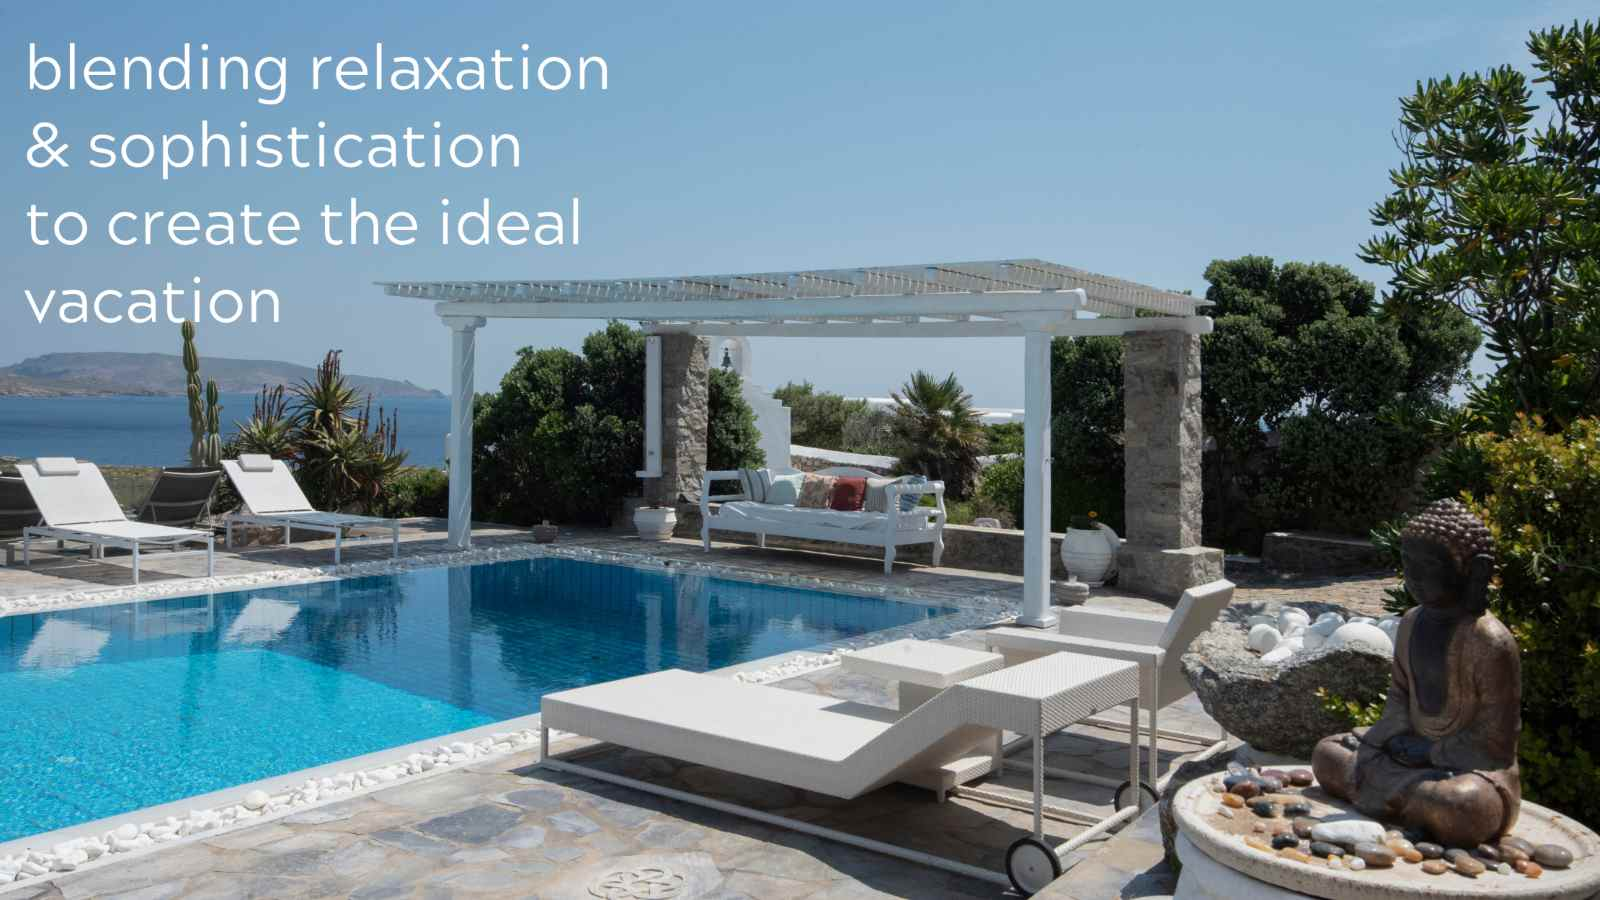 NEW blending relaxation & sophistication to create the ideal place